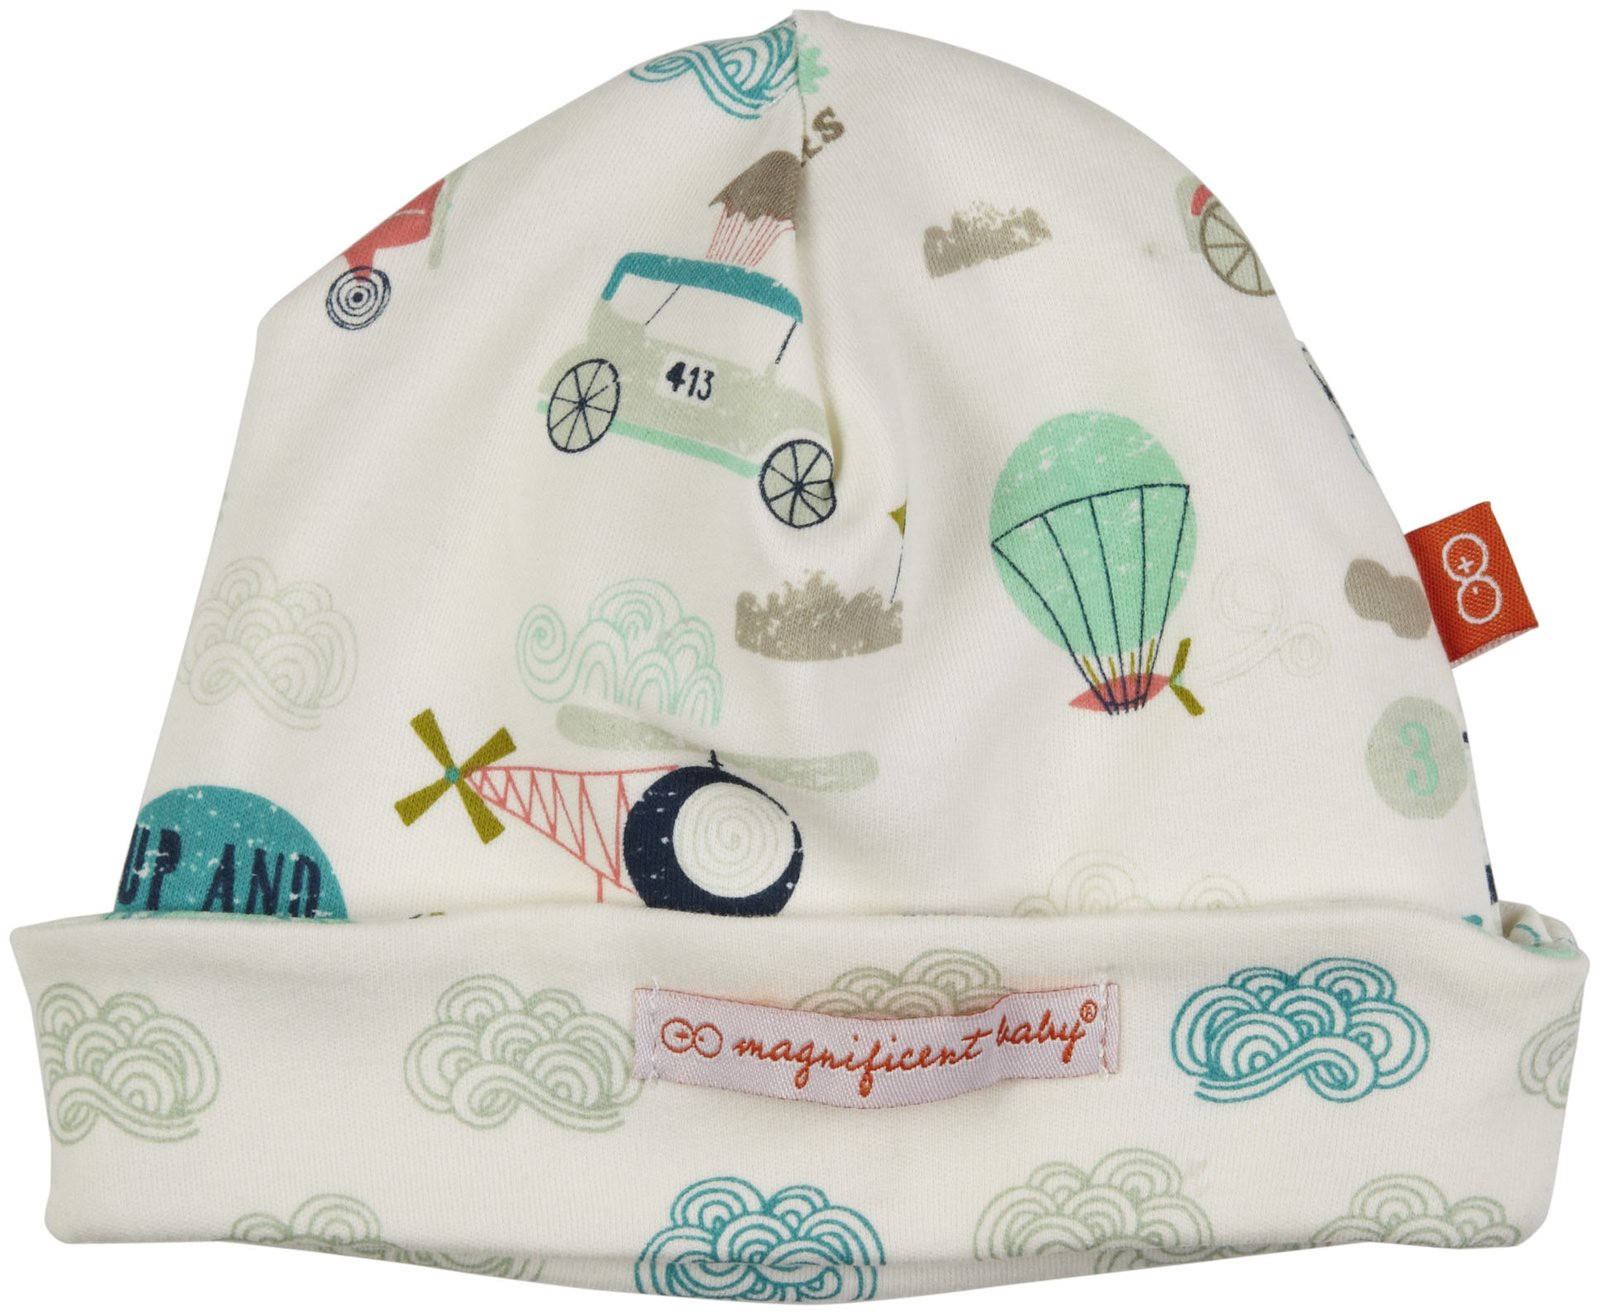 Magnificent Baby-Transport Reversible Hat